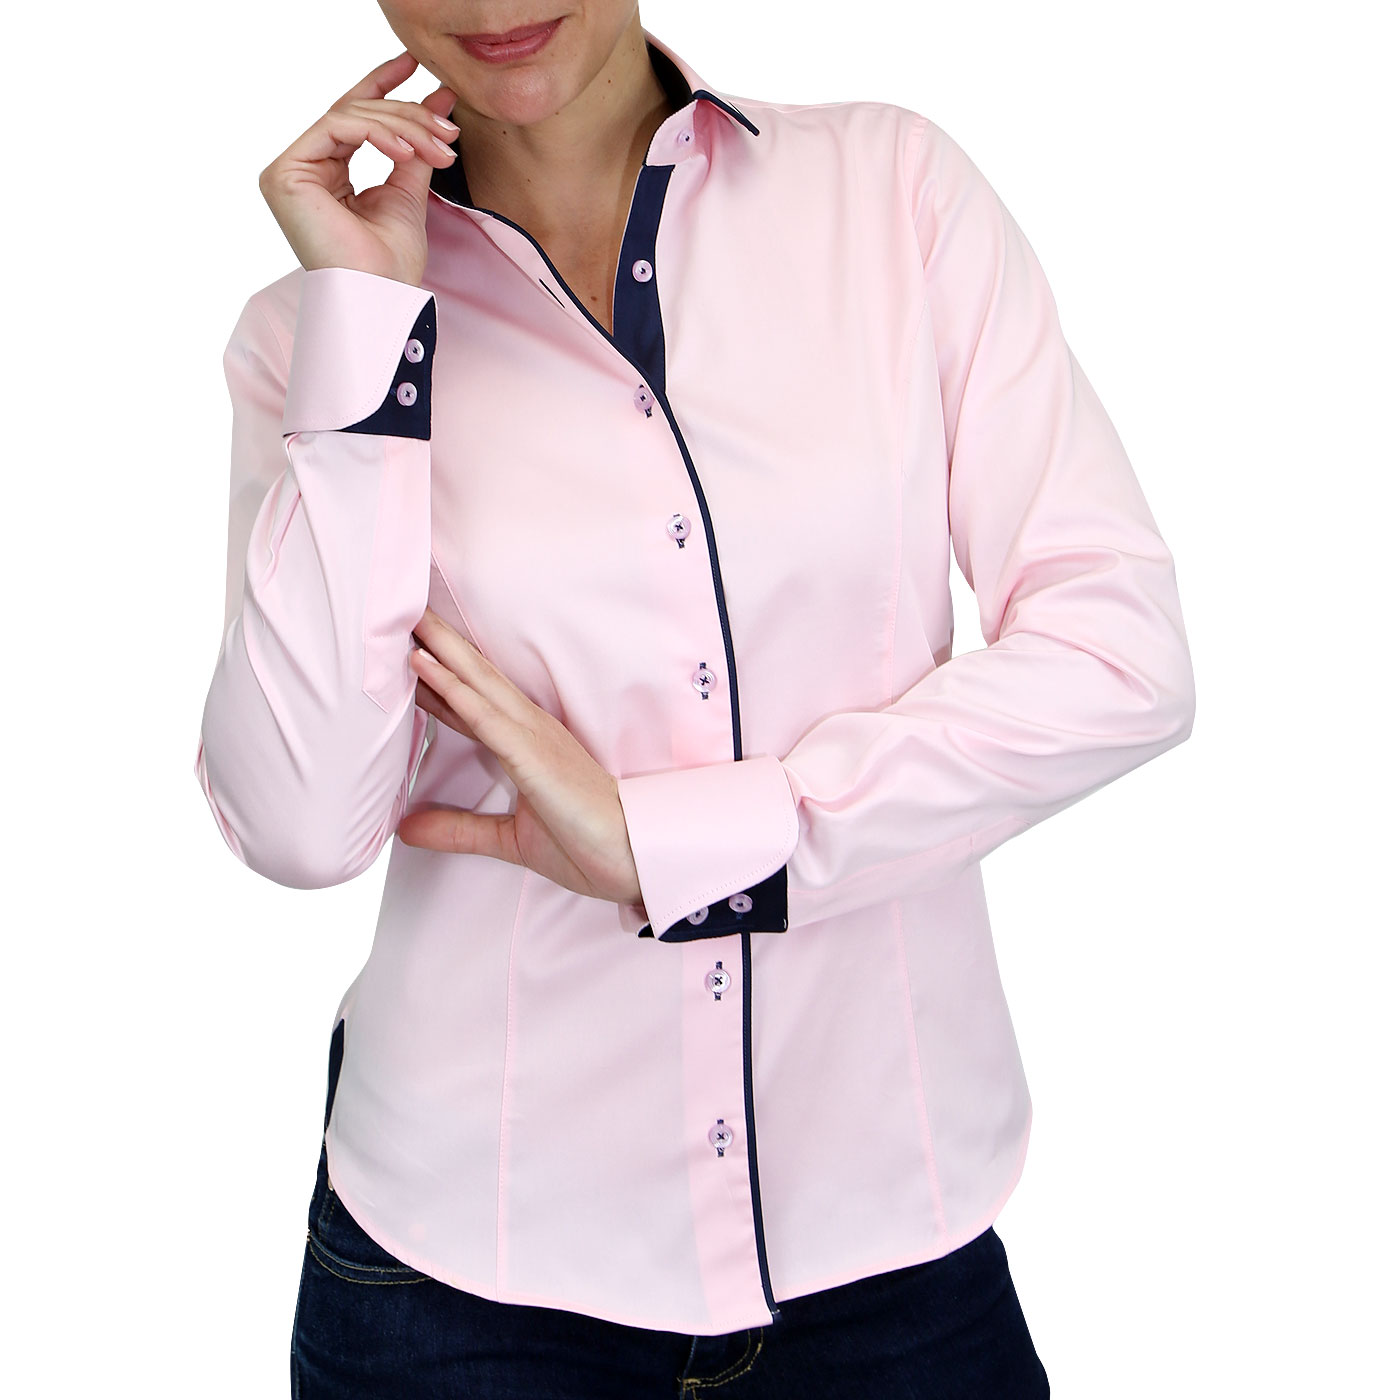 Working girl's shirt